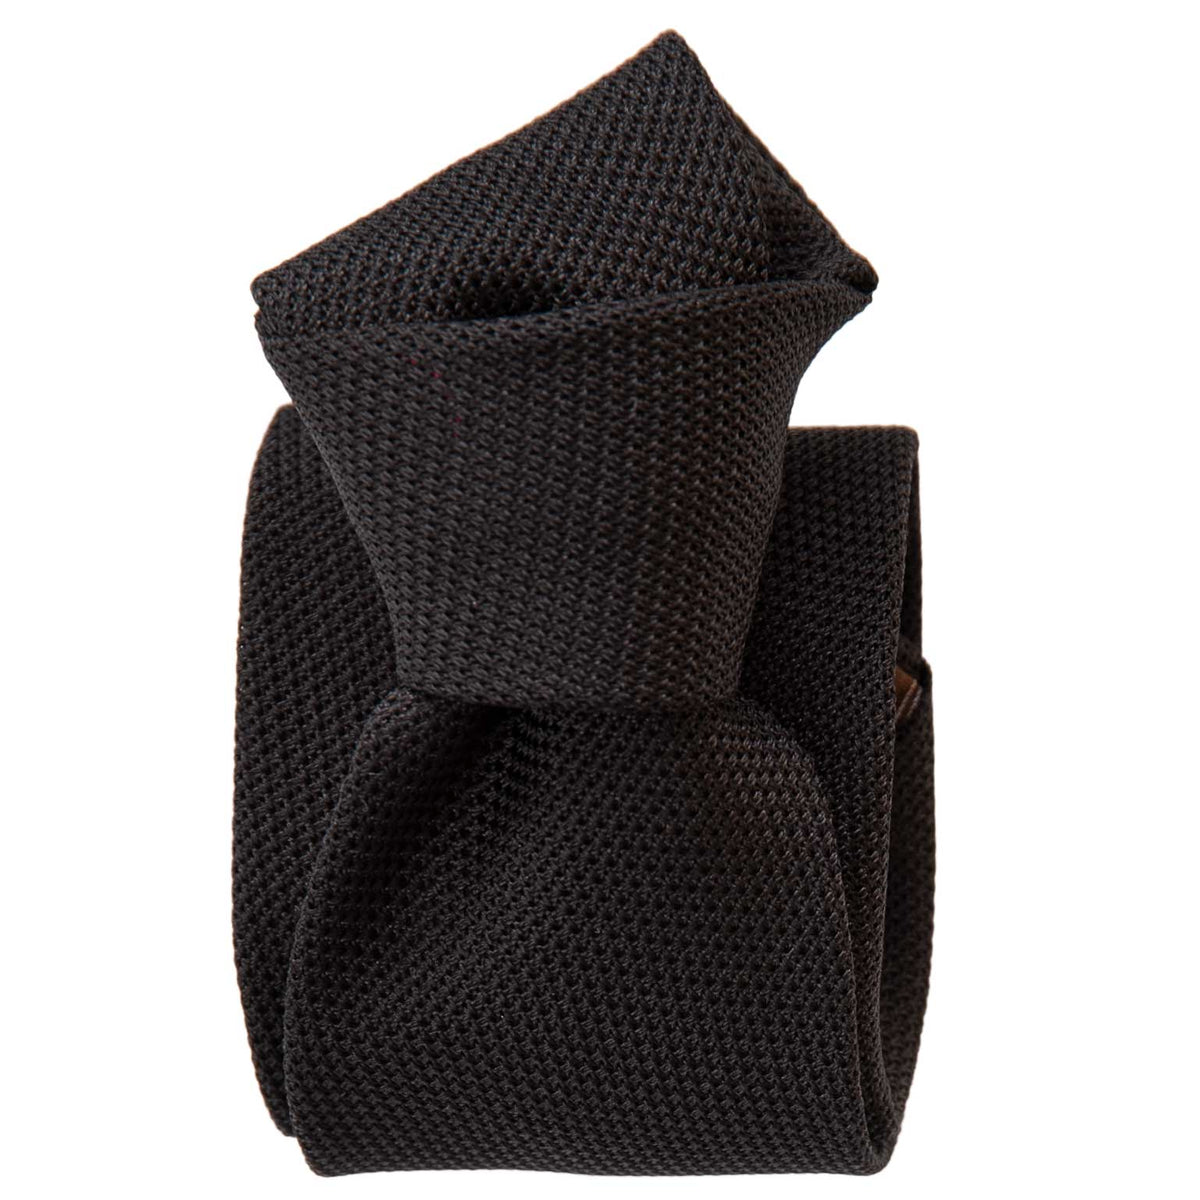 Mens Black Silk Grenadine Tie - Garza Fina